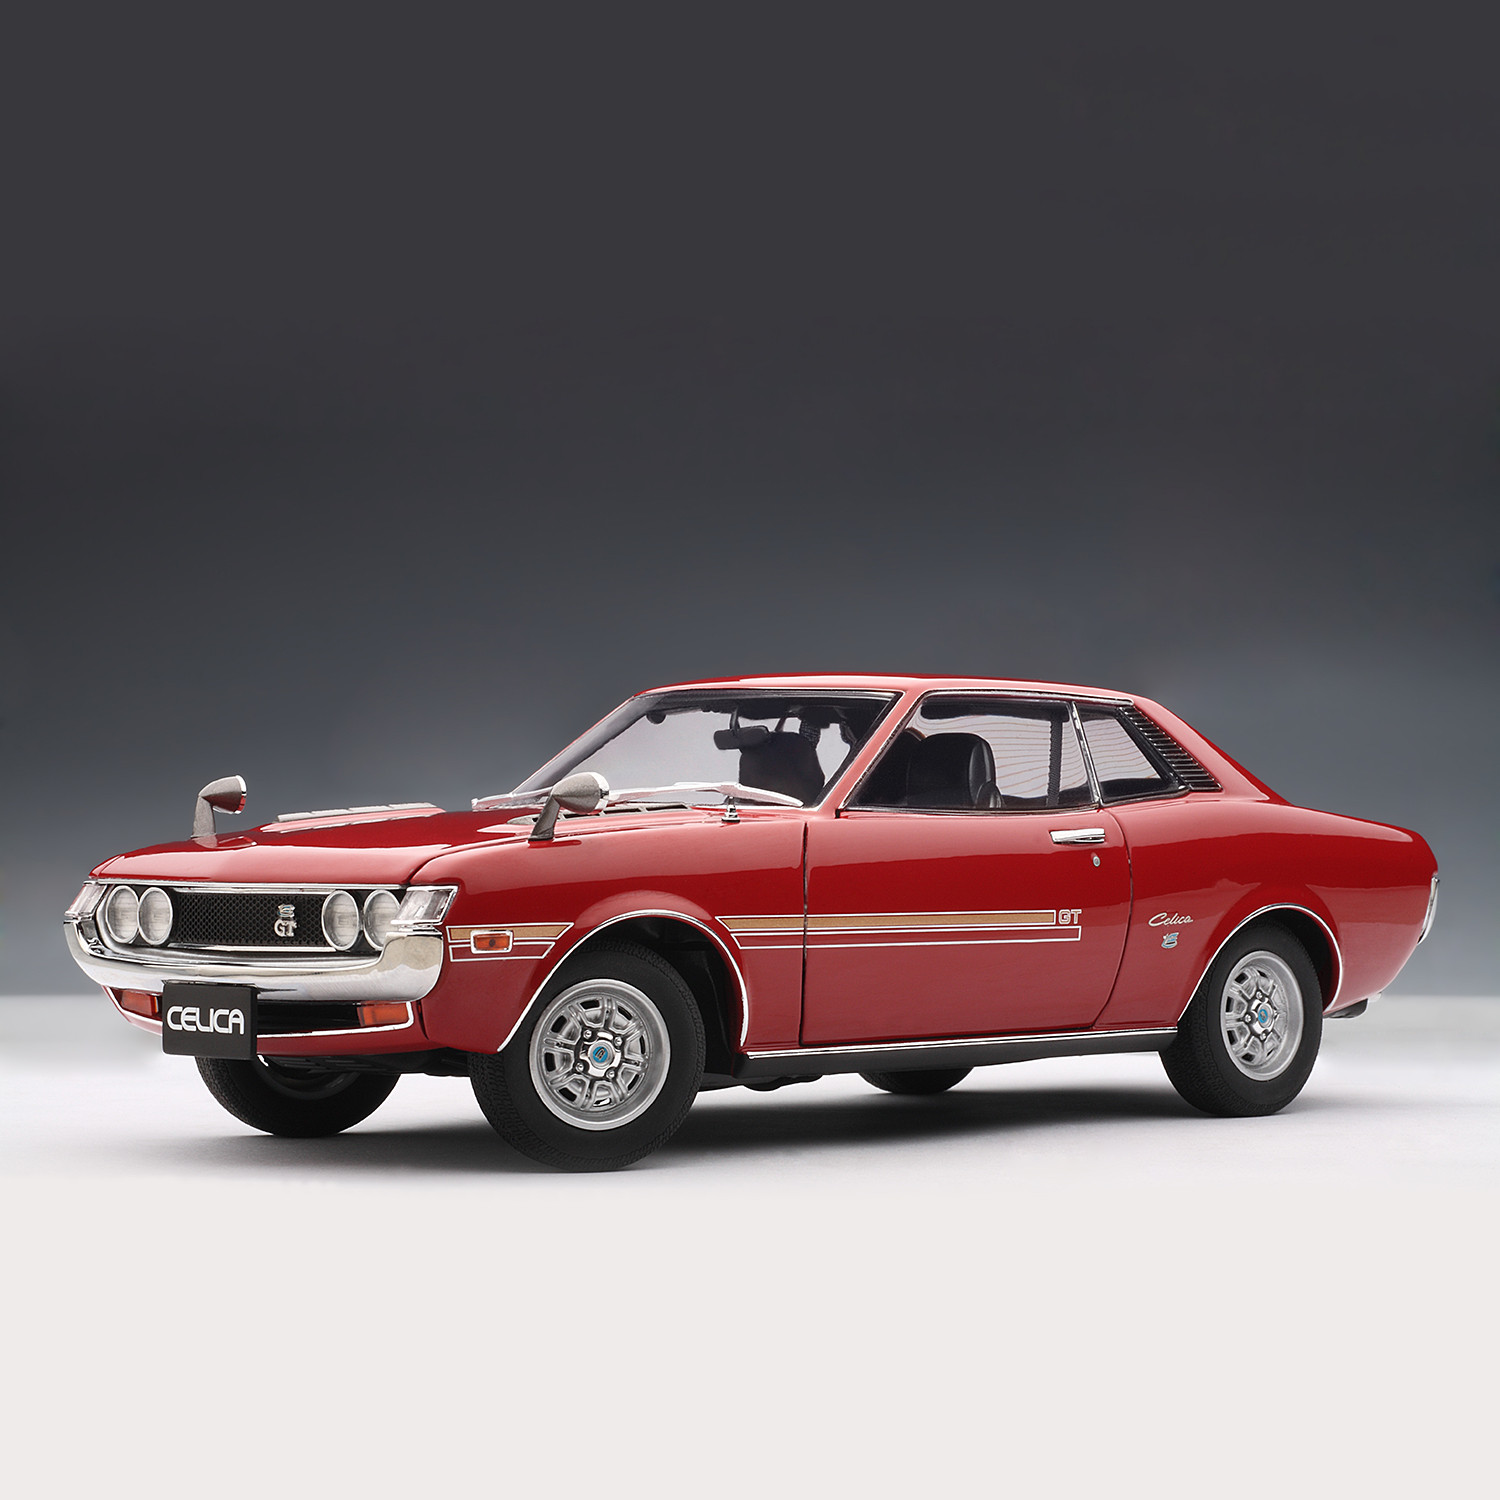 Toyota Celica Coupe 1600 Gt: Toyota Celica 1600GT (Red)